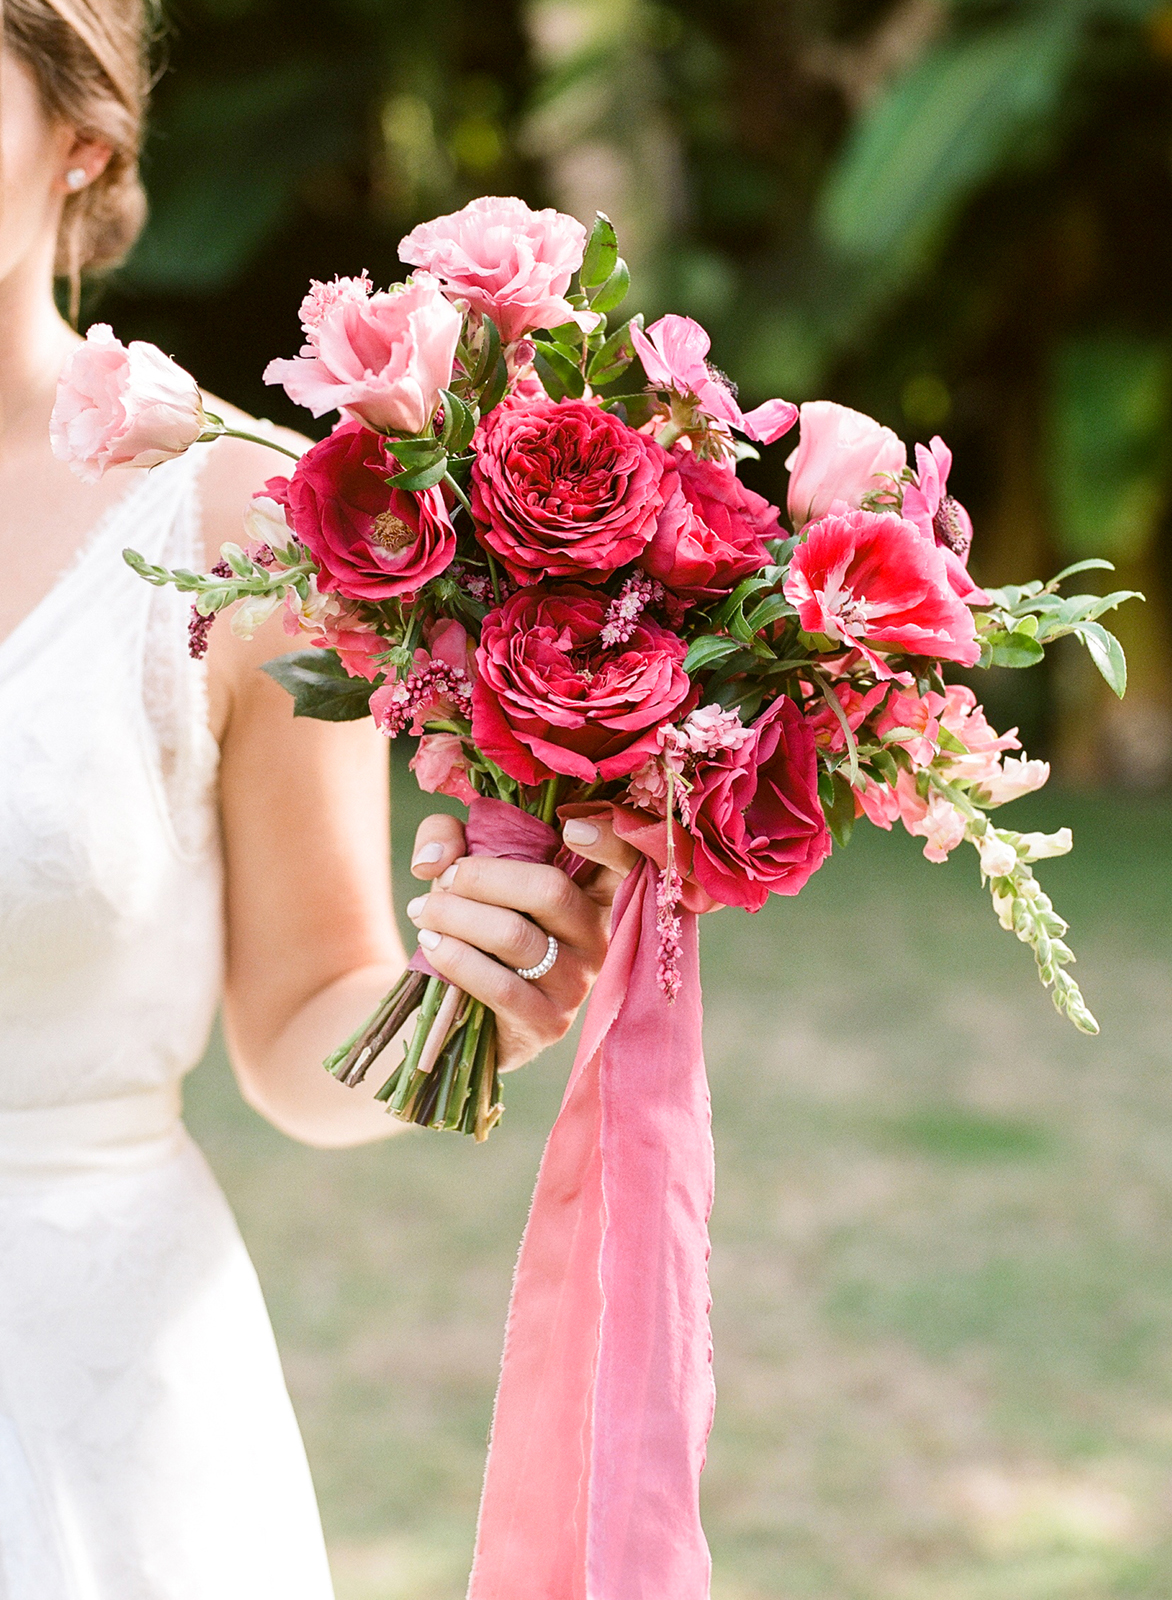 fuchsia, magenta, and coral colored blooms with greenery bouquet